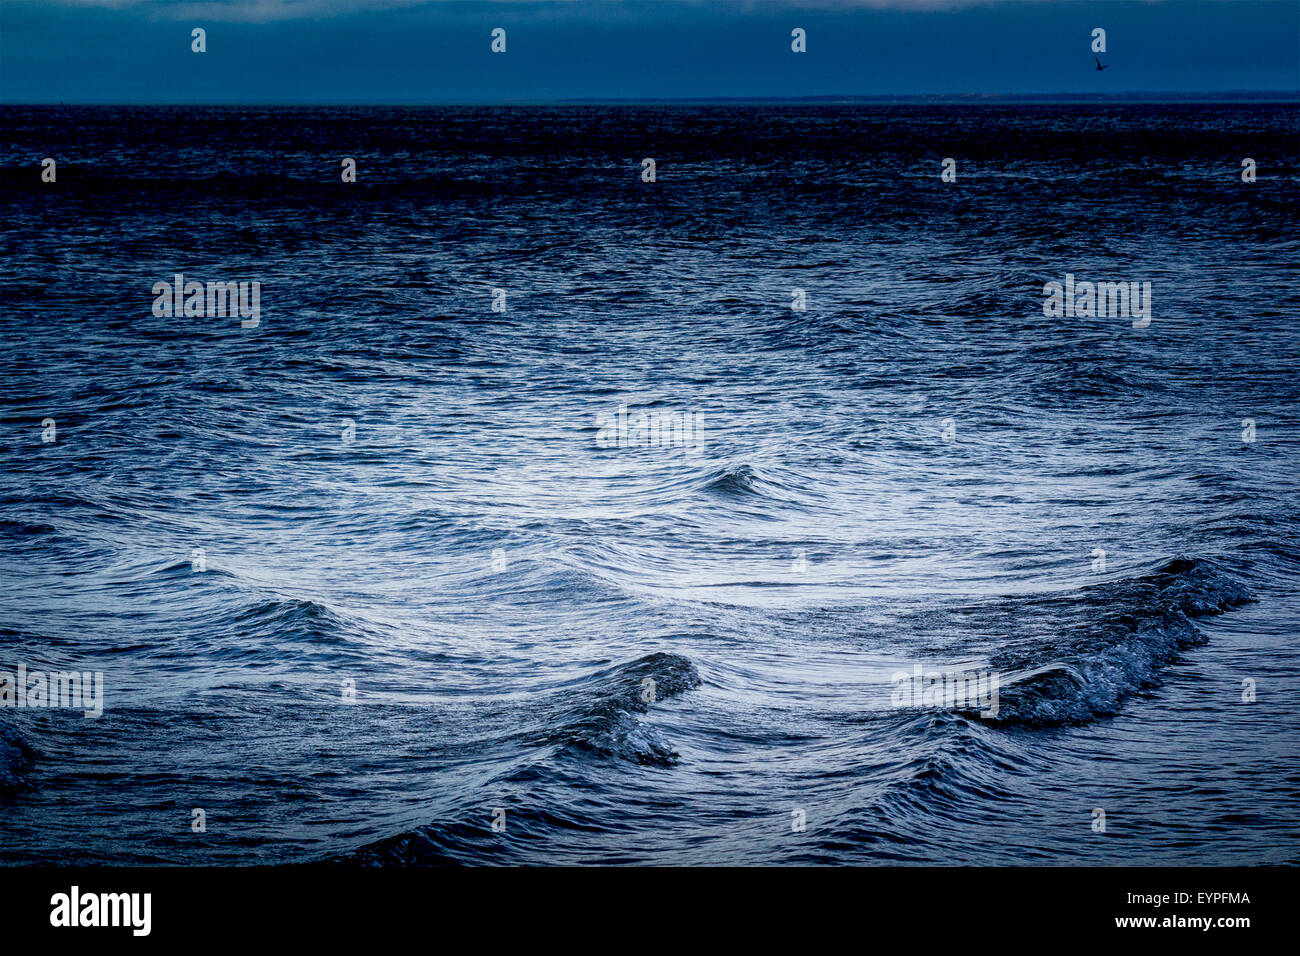 Waves coming into shore on Lake Huron with moonlight bouncing off of the water - Stock Image